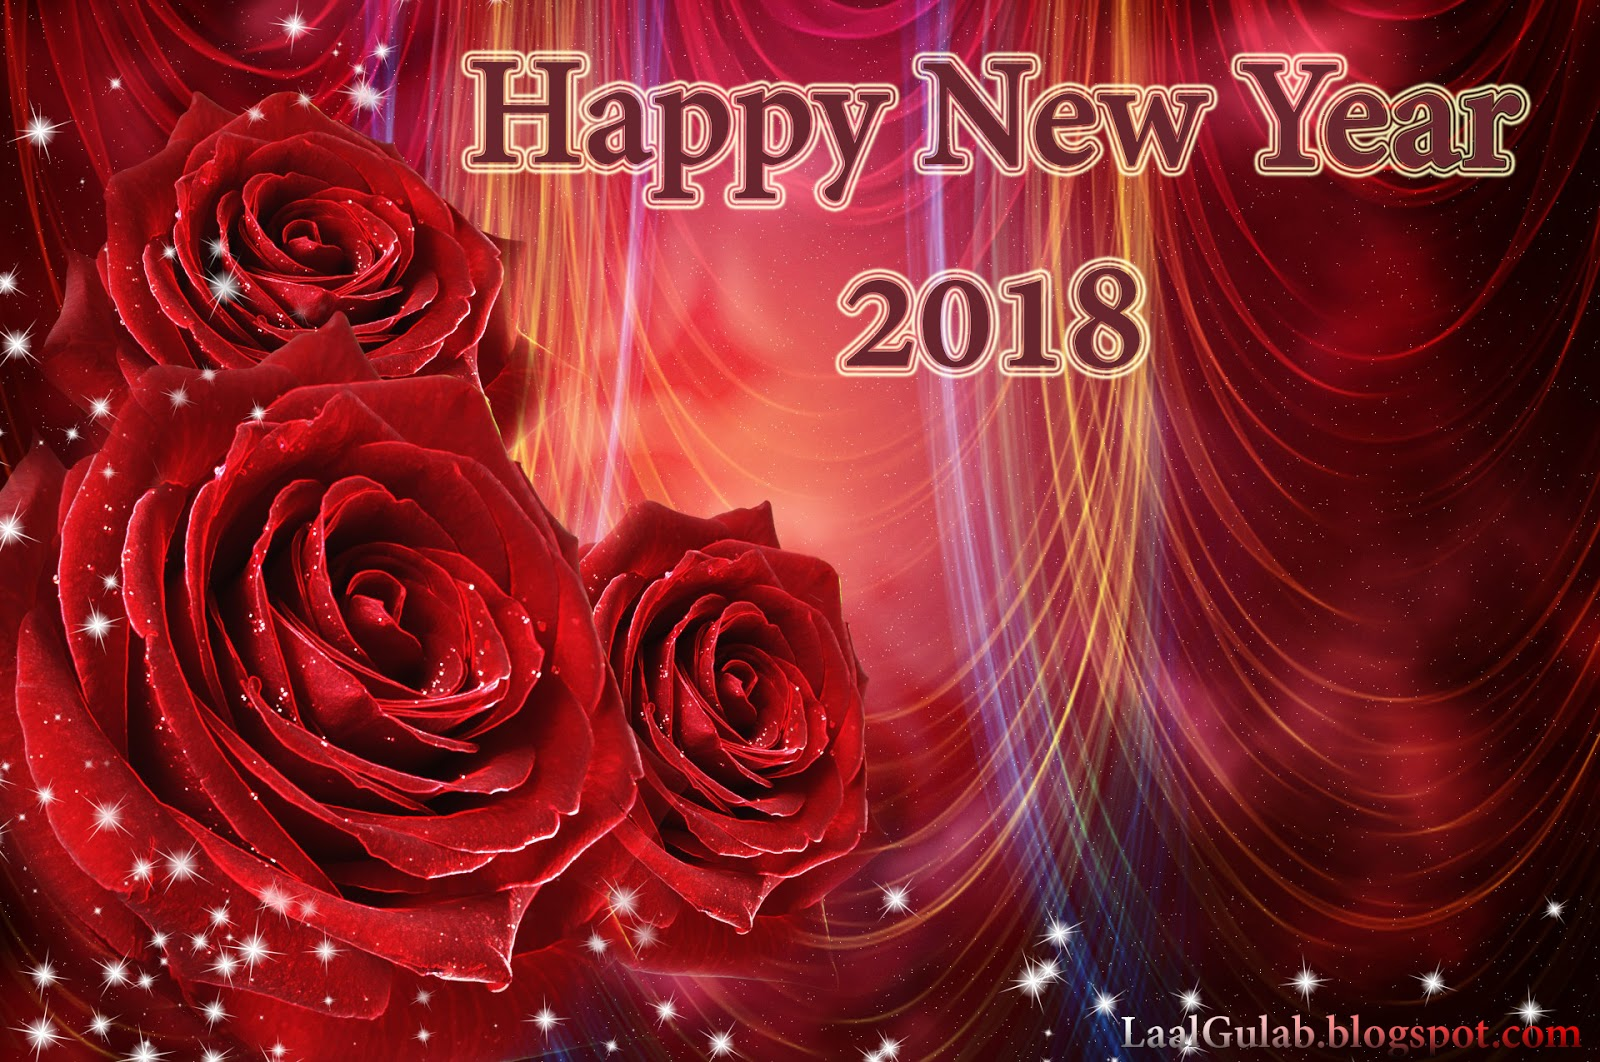 Happy New Year 2018 Wallpaper - 8